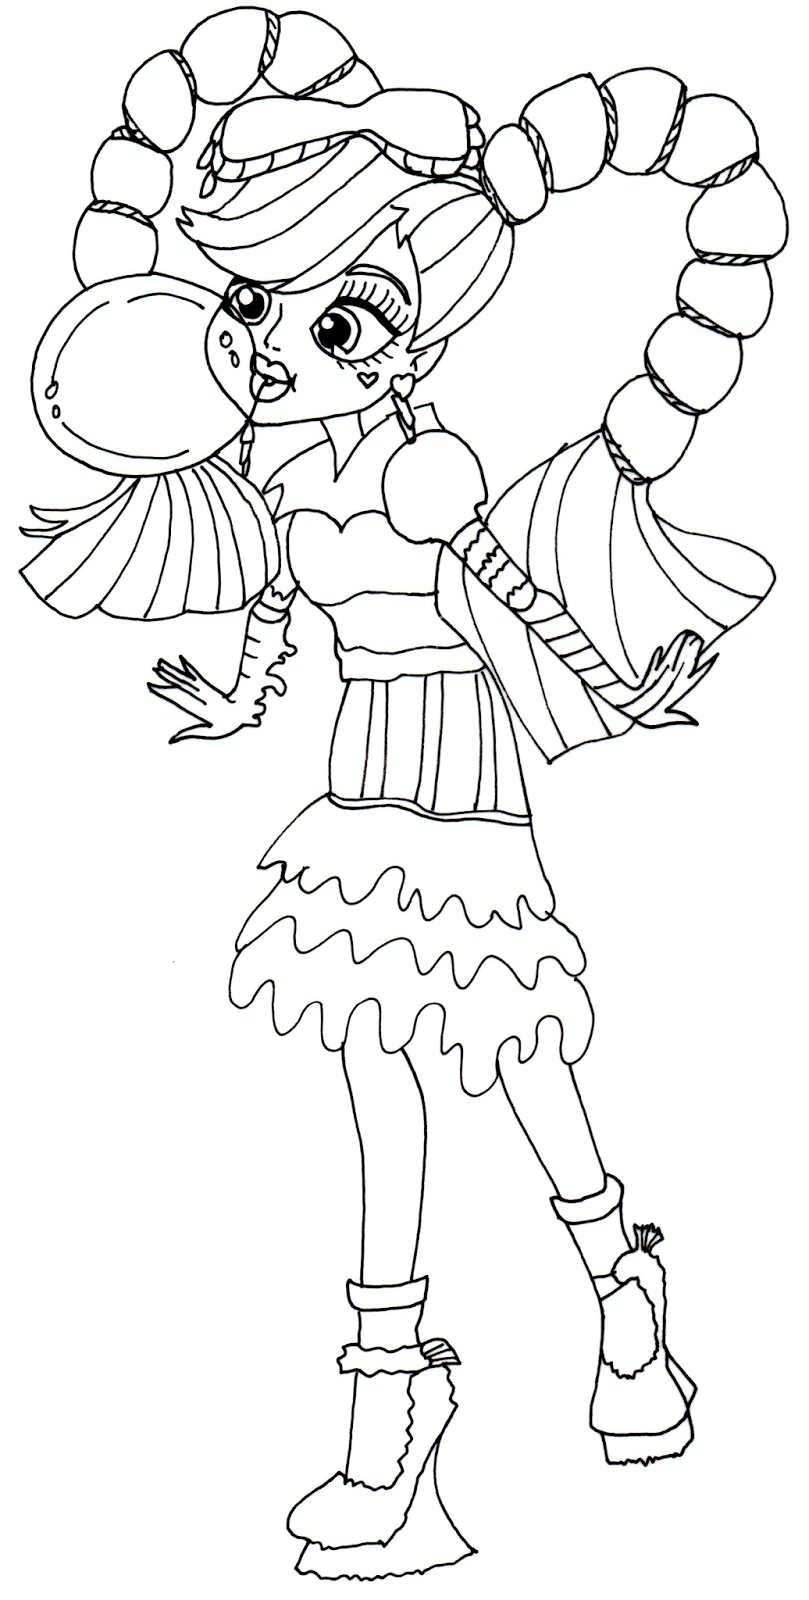 Lagoona Blue From Monster High Coloring Page Printable